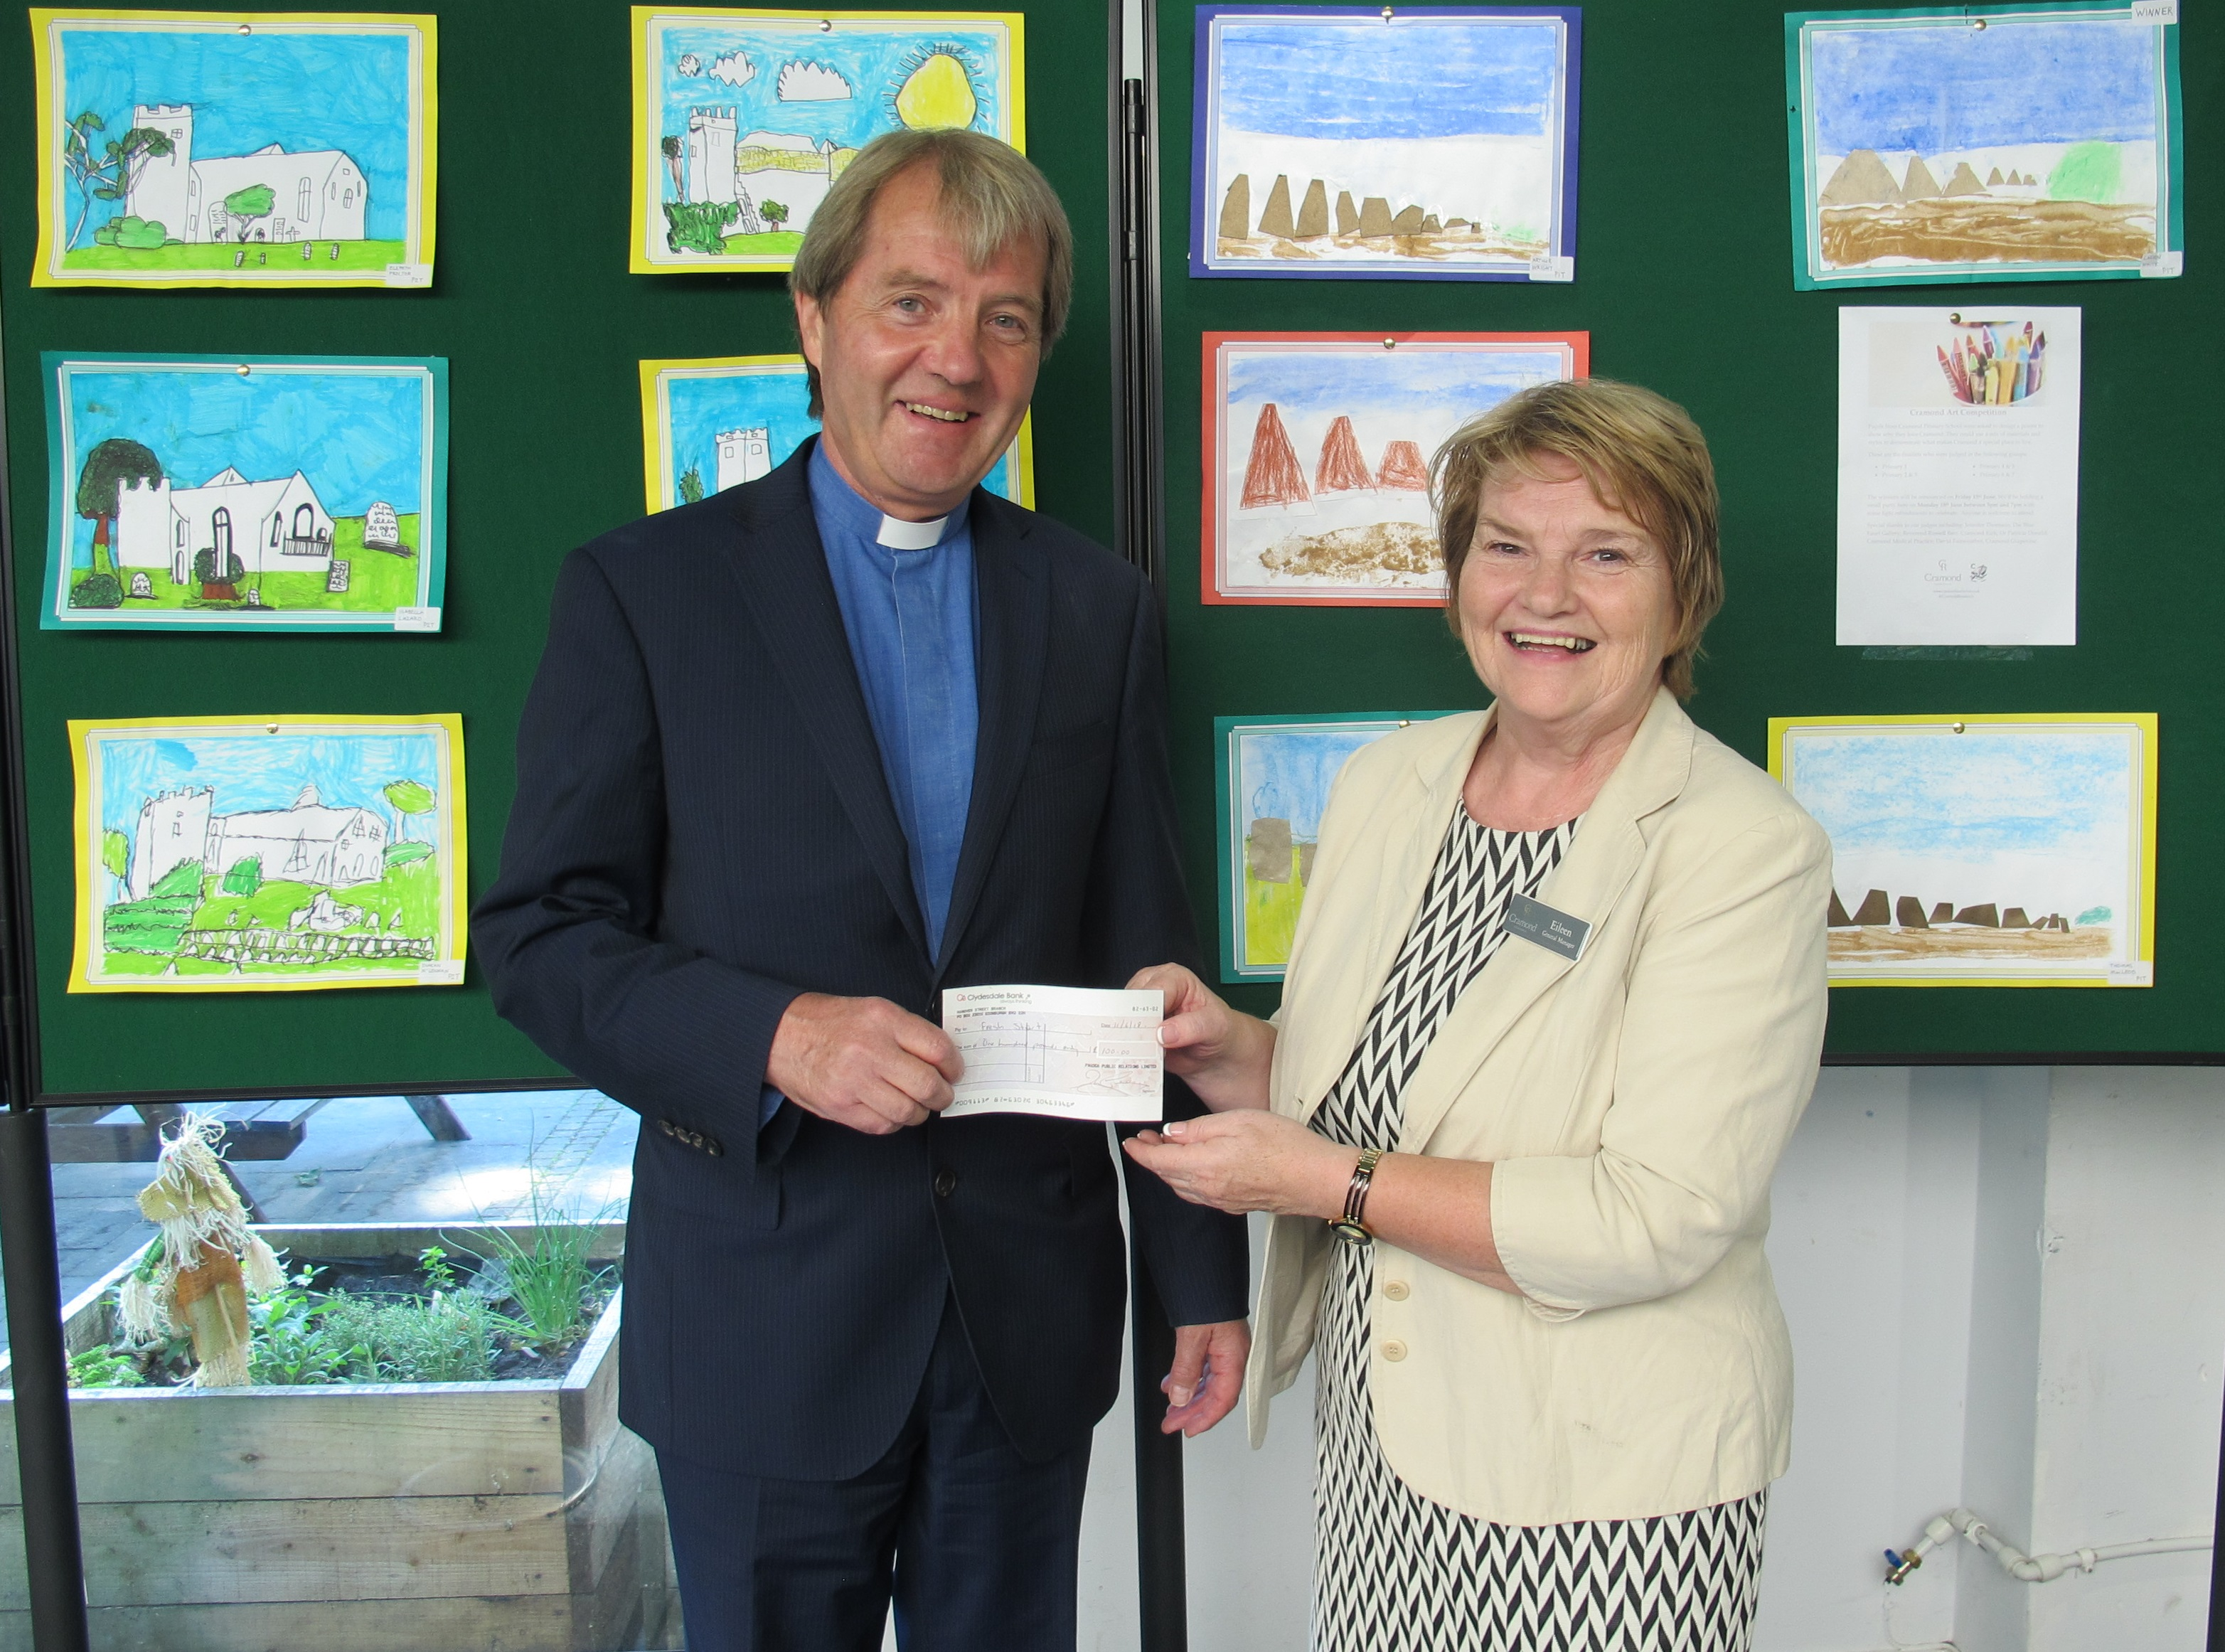 Eileen Gray, general manager at Cramond Residence handing donation to Russell Barr from Cramond Kirk